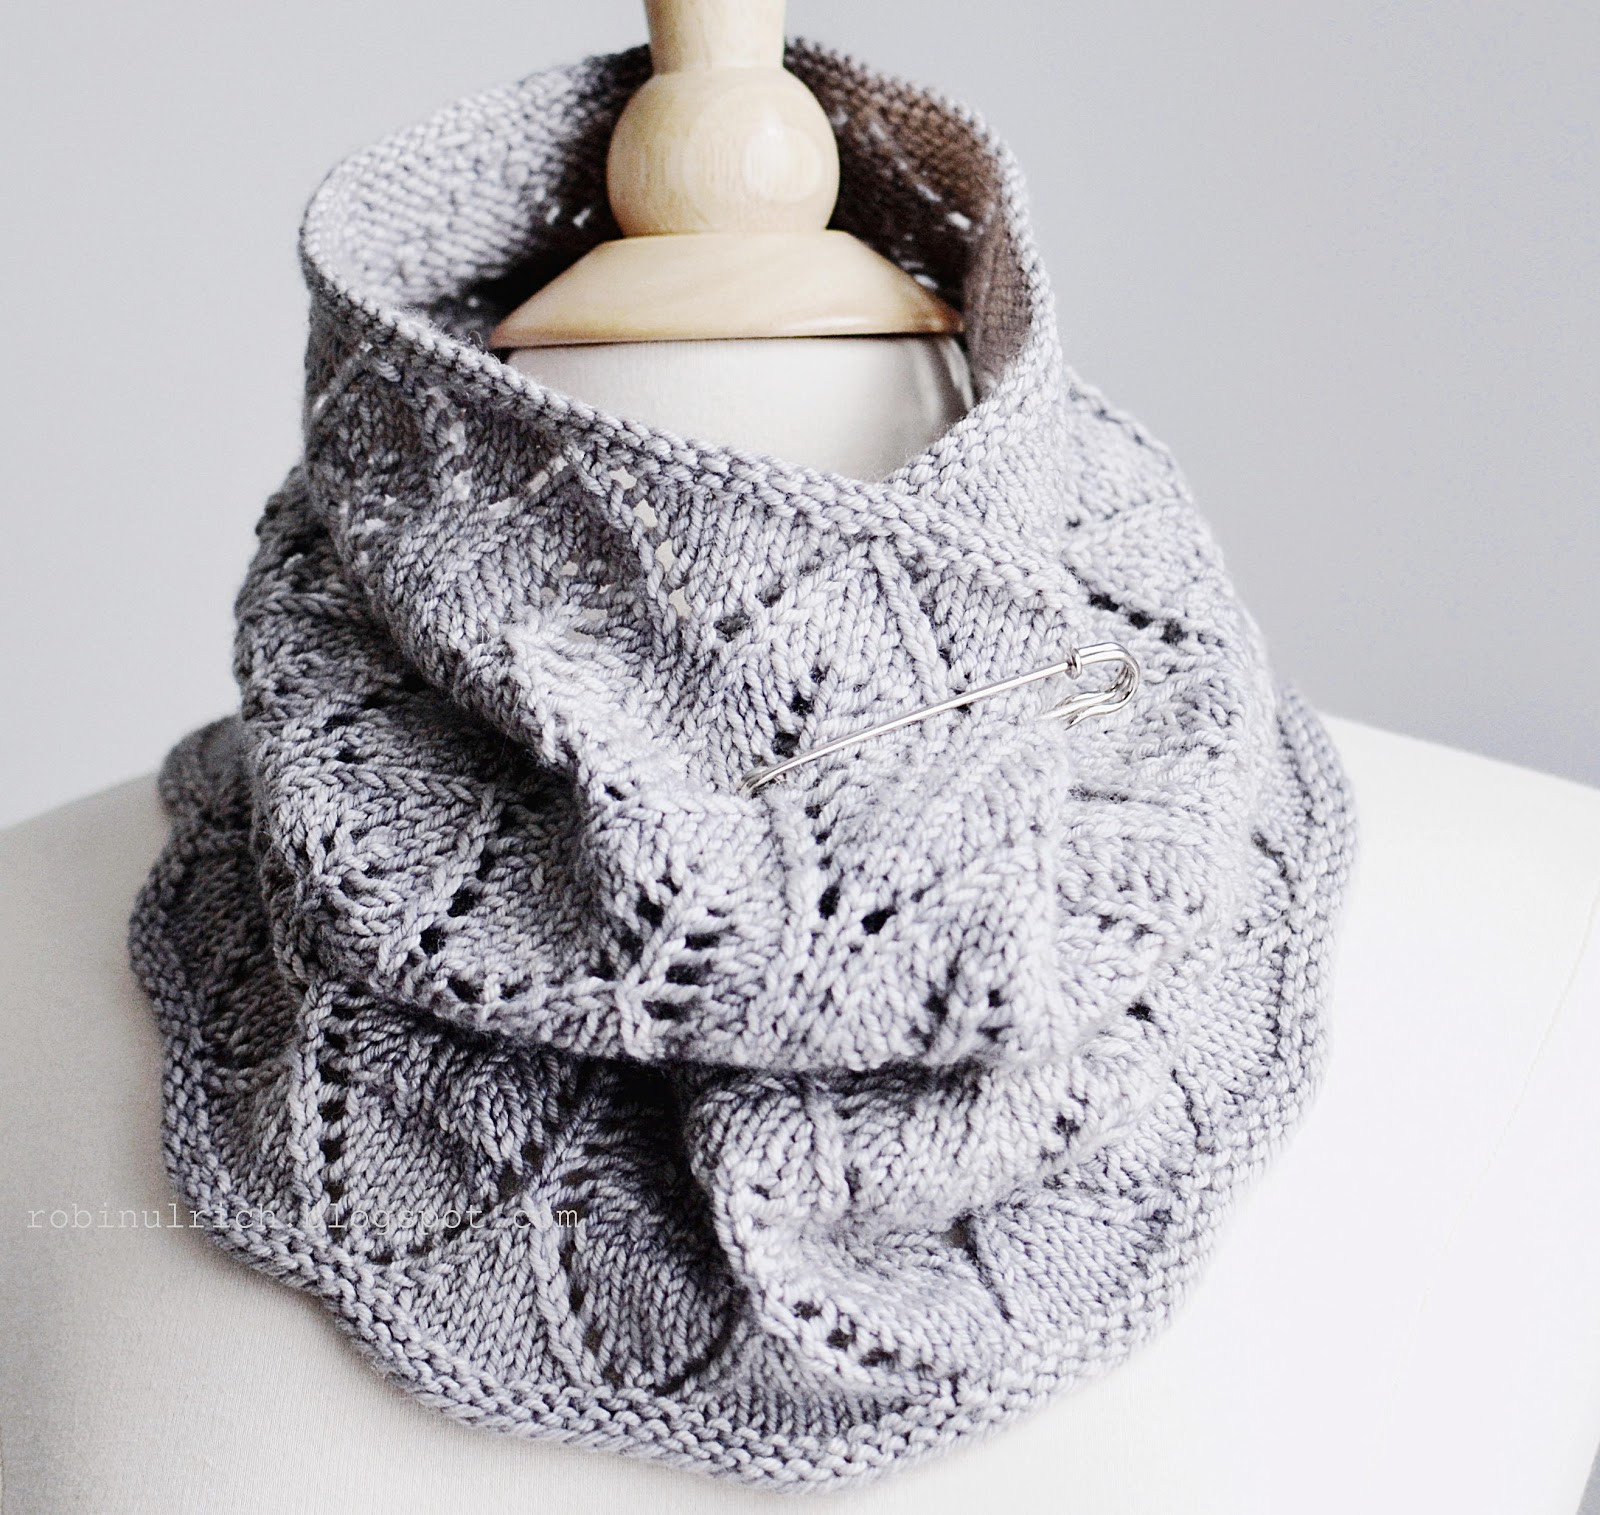 Luxury Robin Ulrich Studio New Knitting Pattern Greyhaven Knitting Design Of Incredible 42 Images Knitting Design